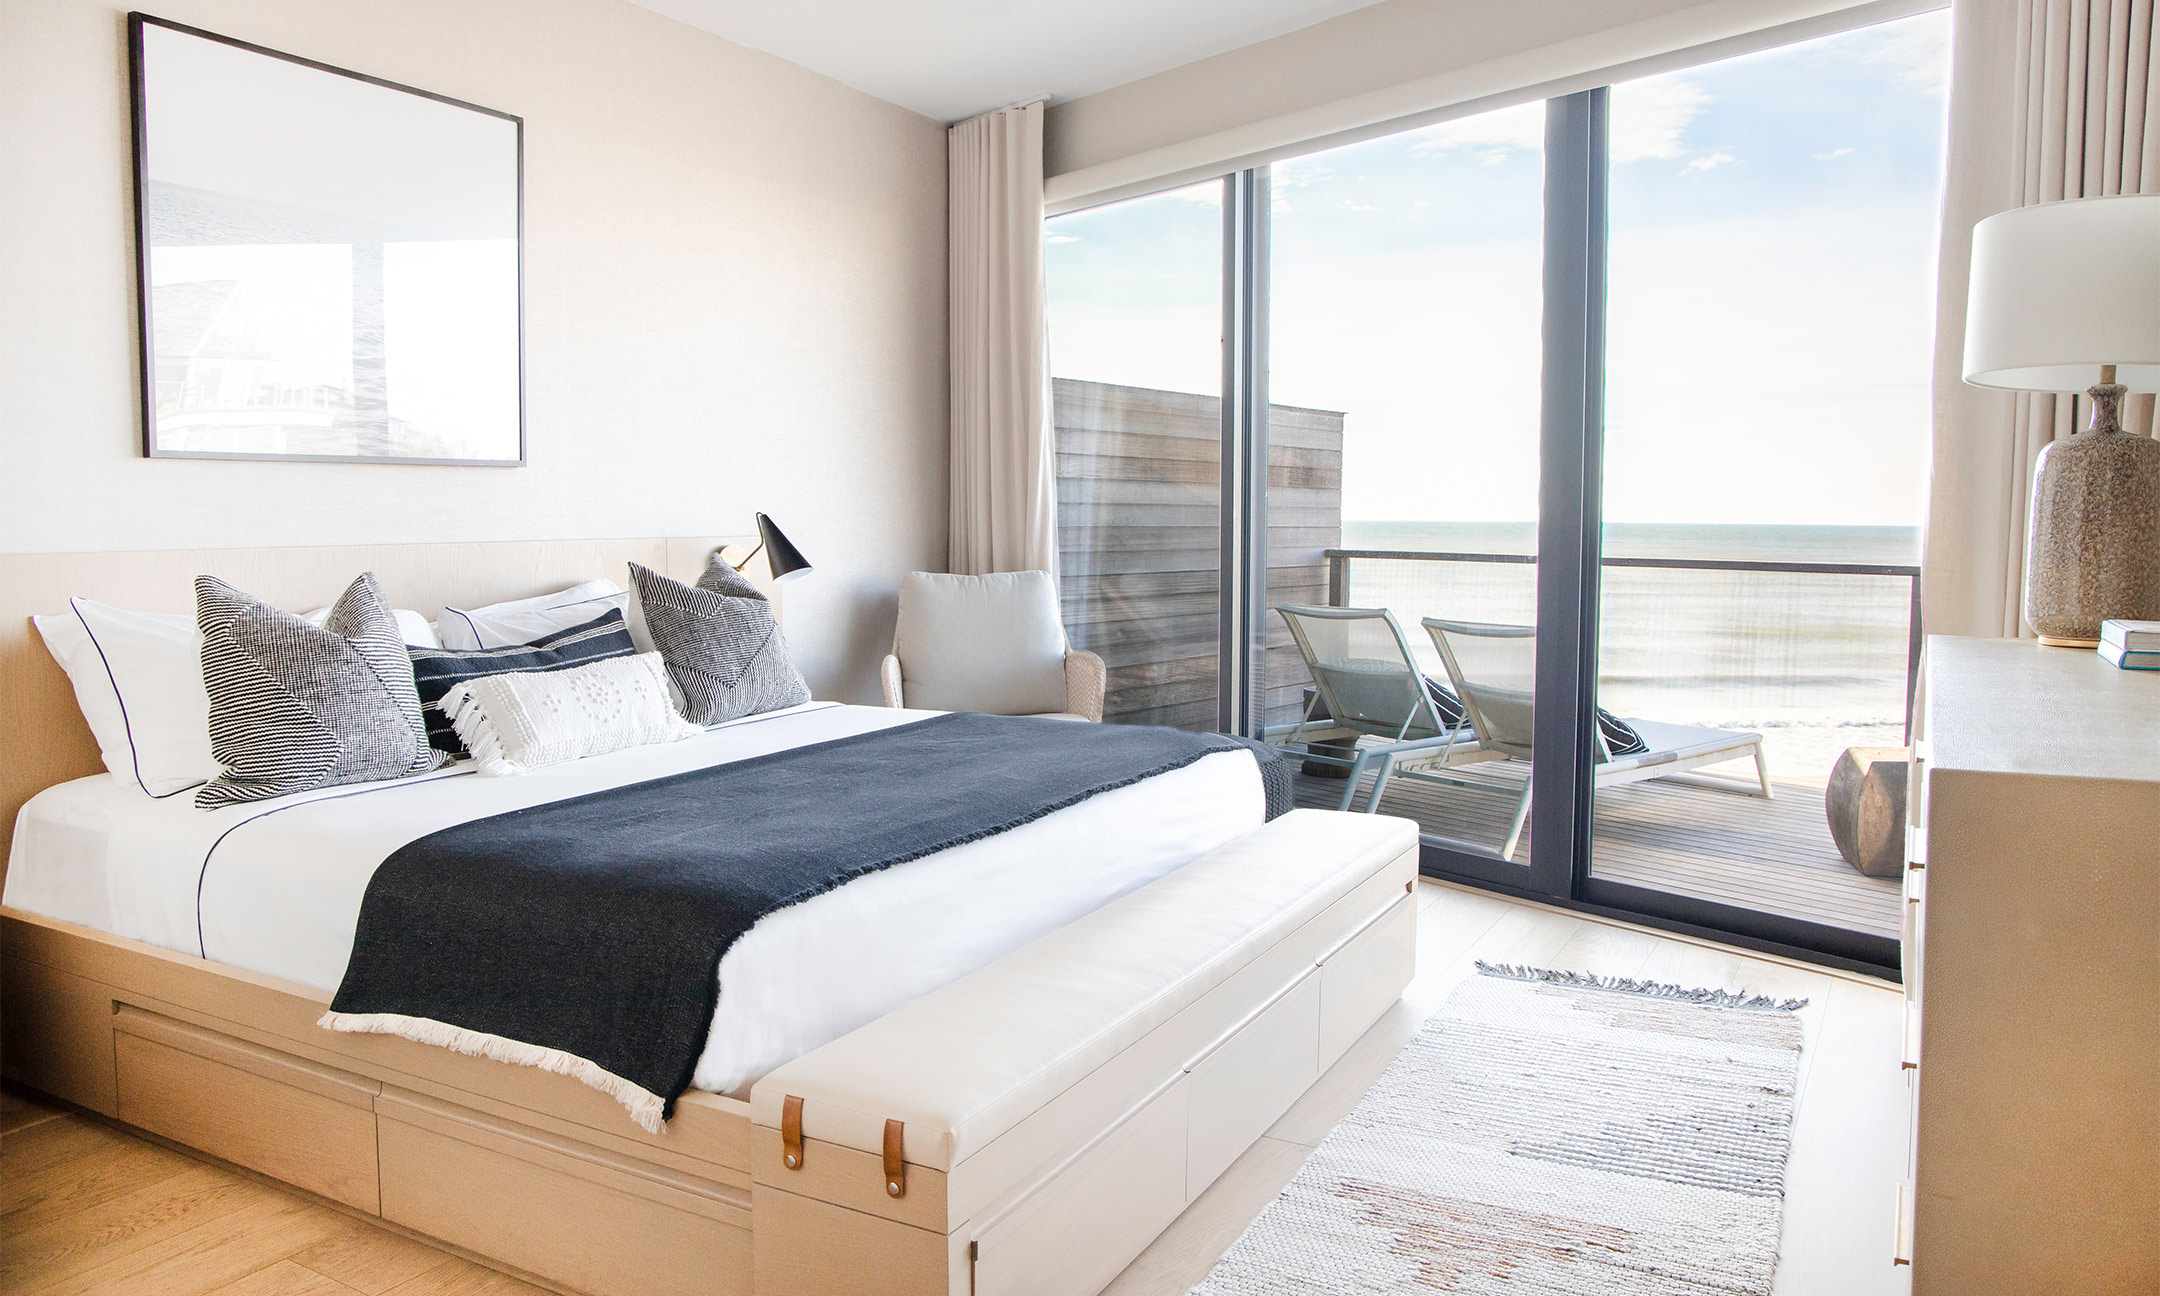 Residence bedroom with view of the ocean